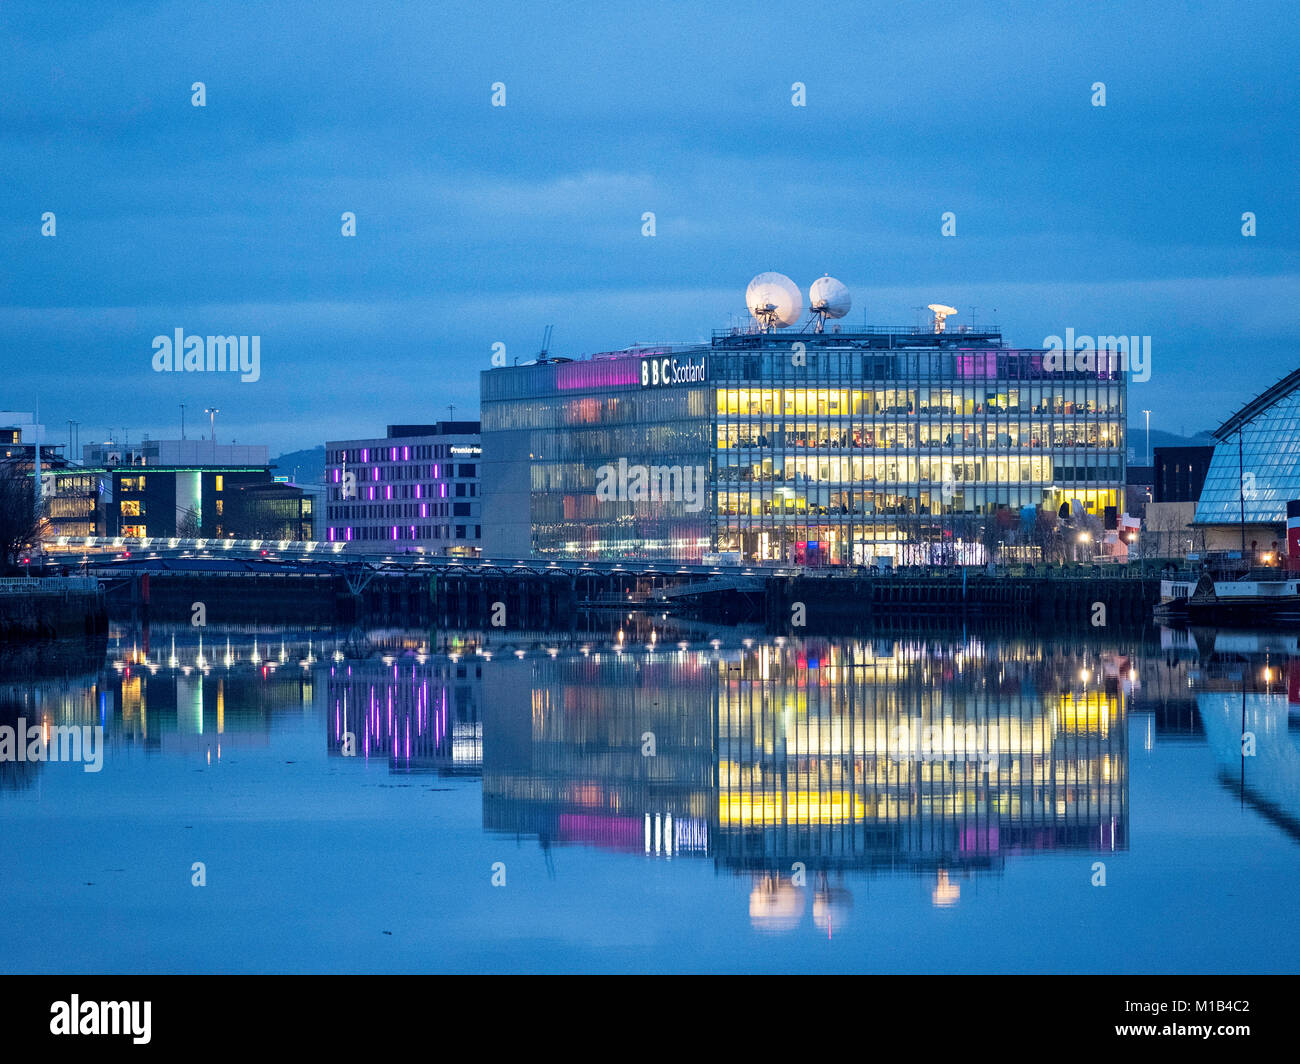 Evening view of BBC Scotland headquarters reflected in River Clyde in Glasgow , Scotland, United Kingdom - Stock Image